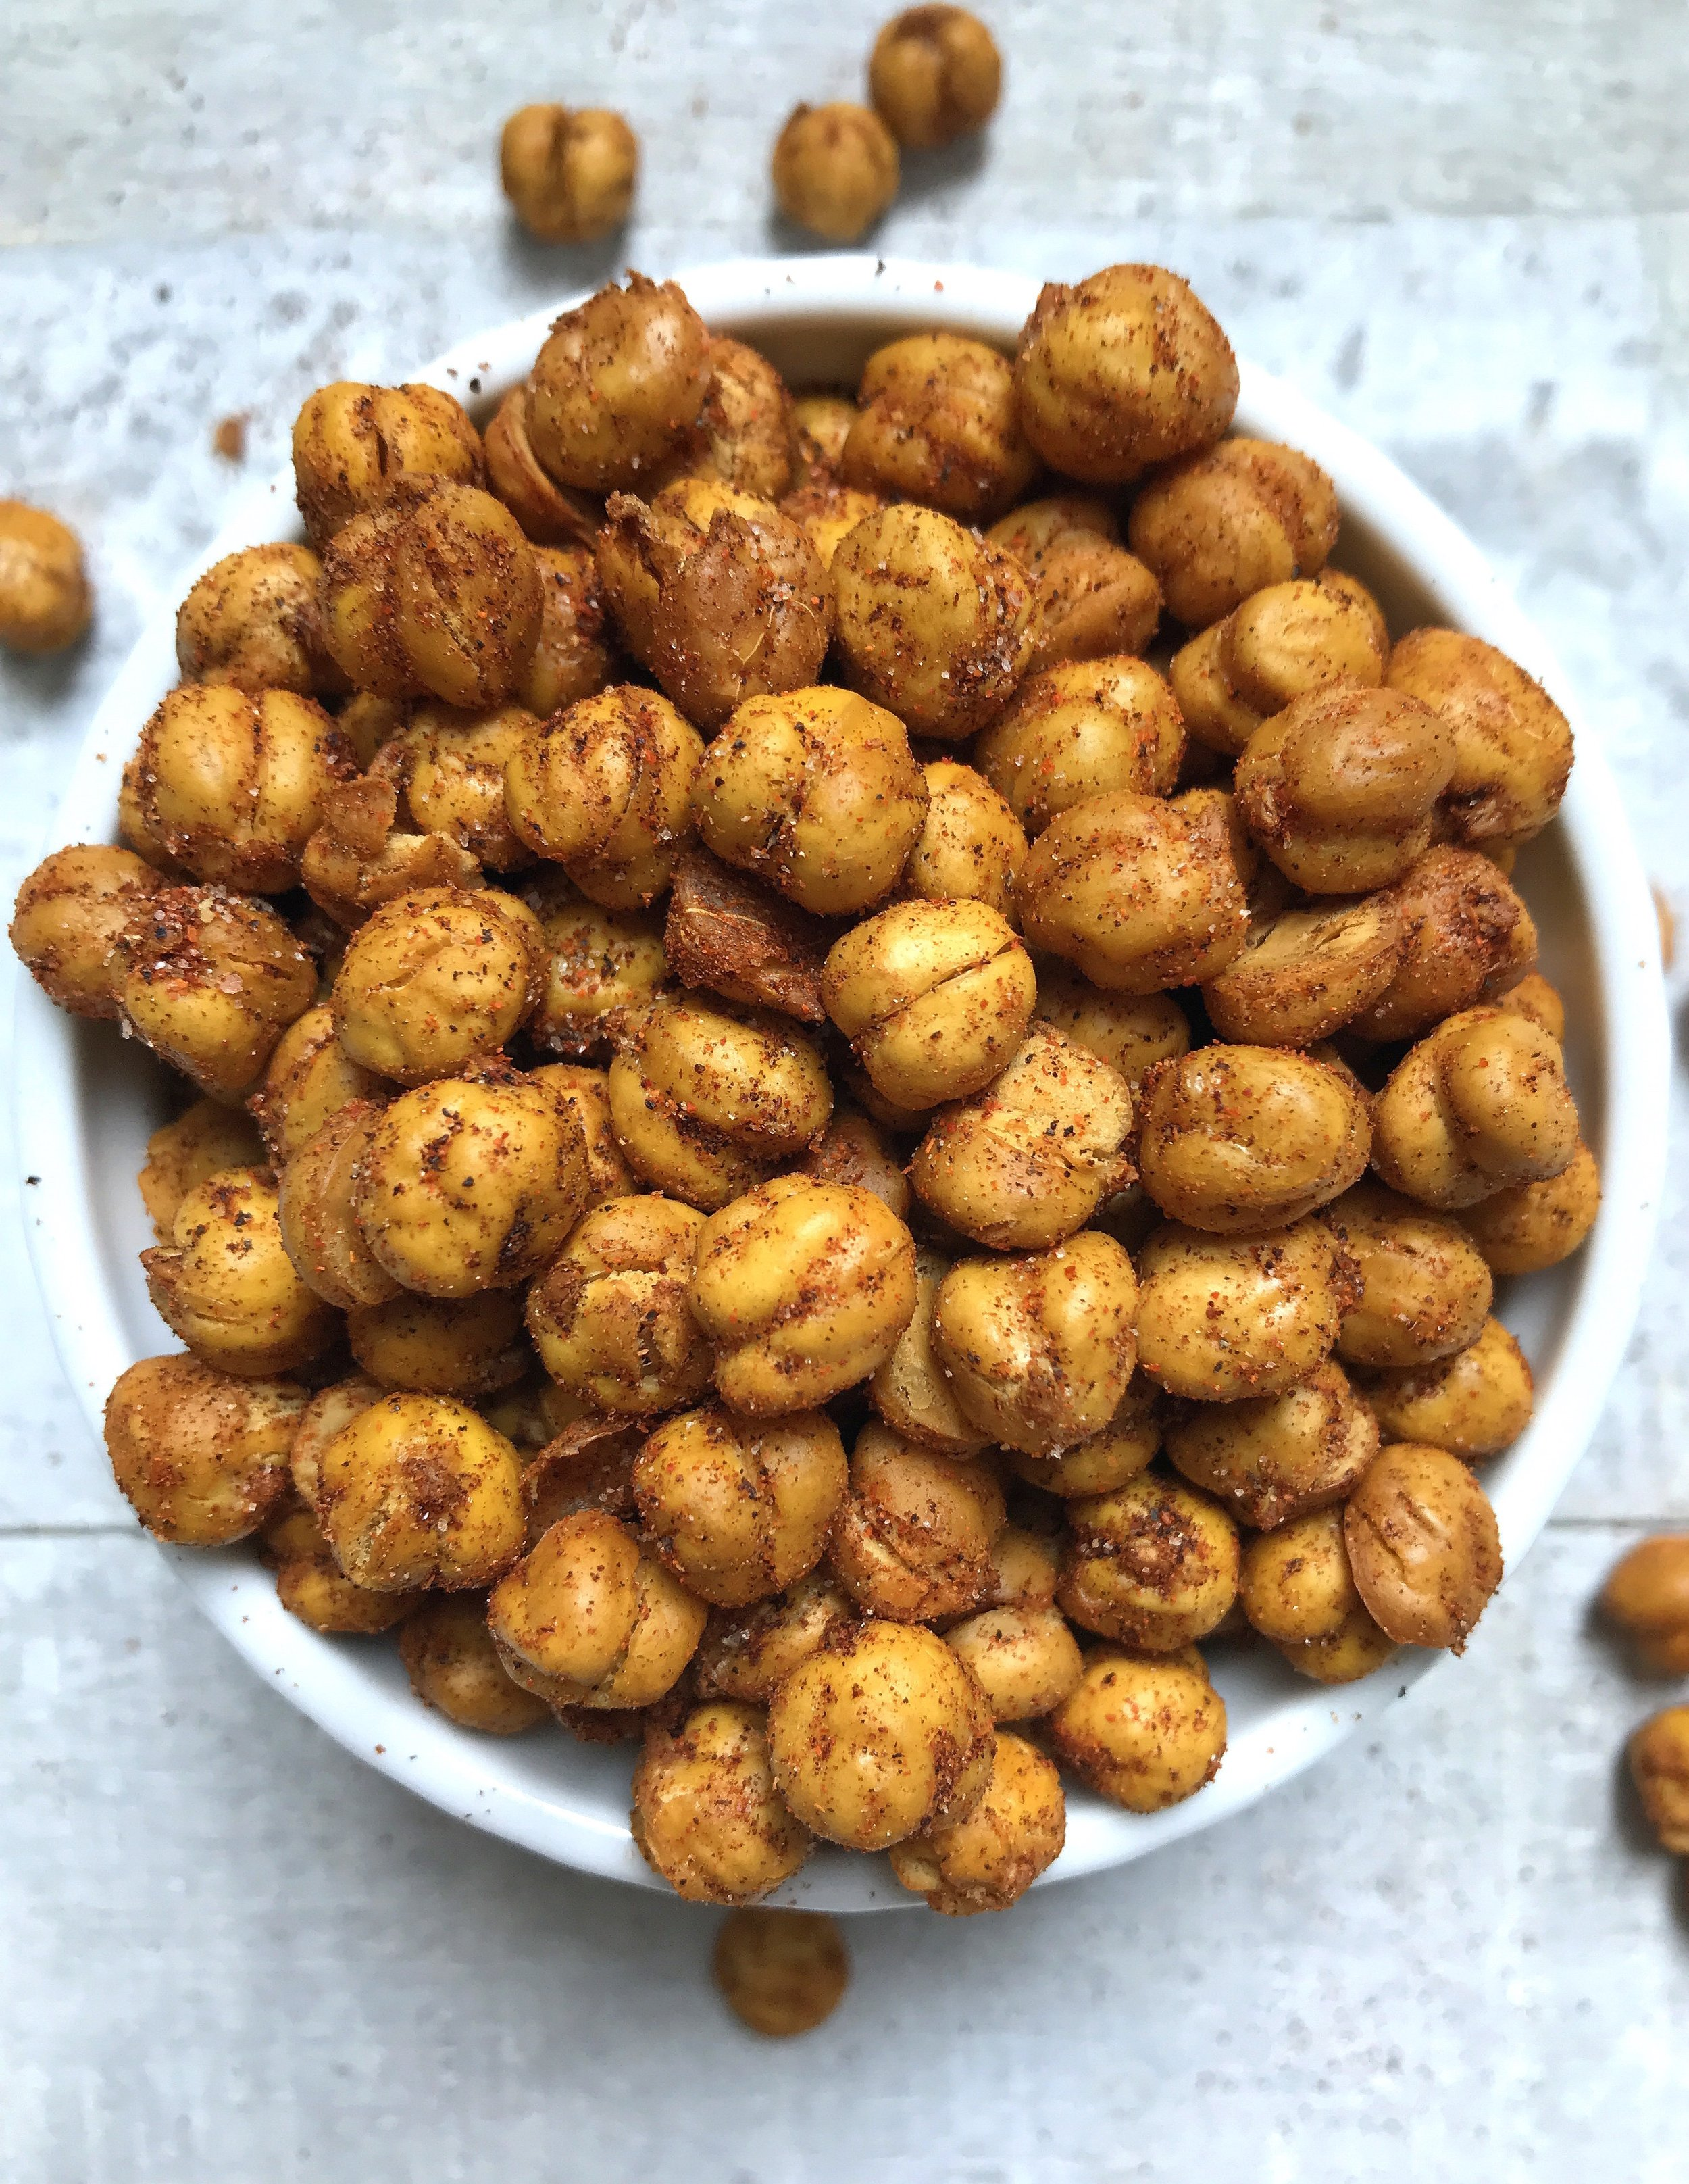 Spicy Air-Fried Chickpeas